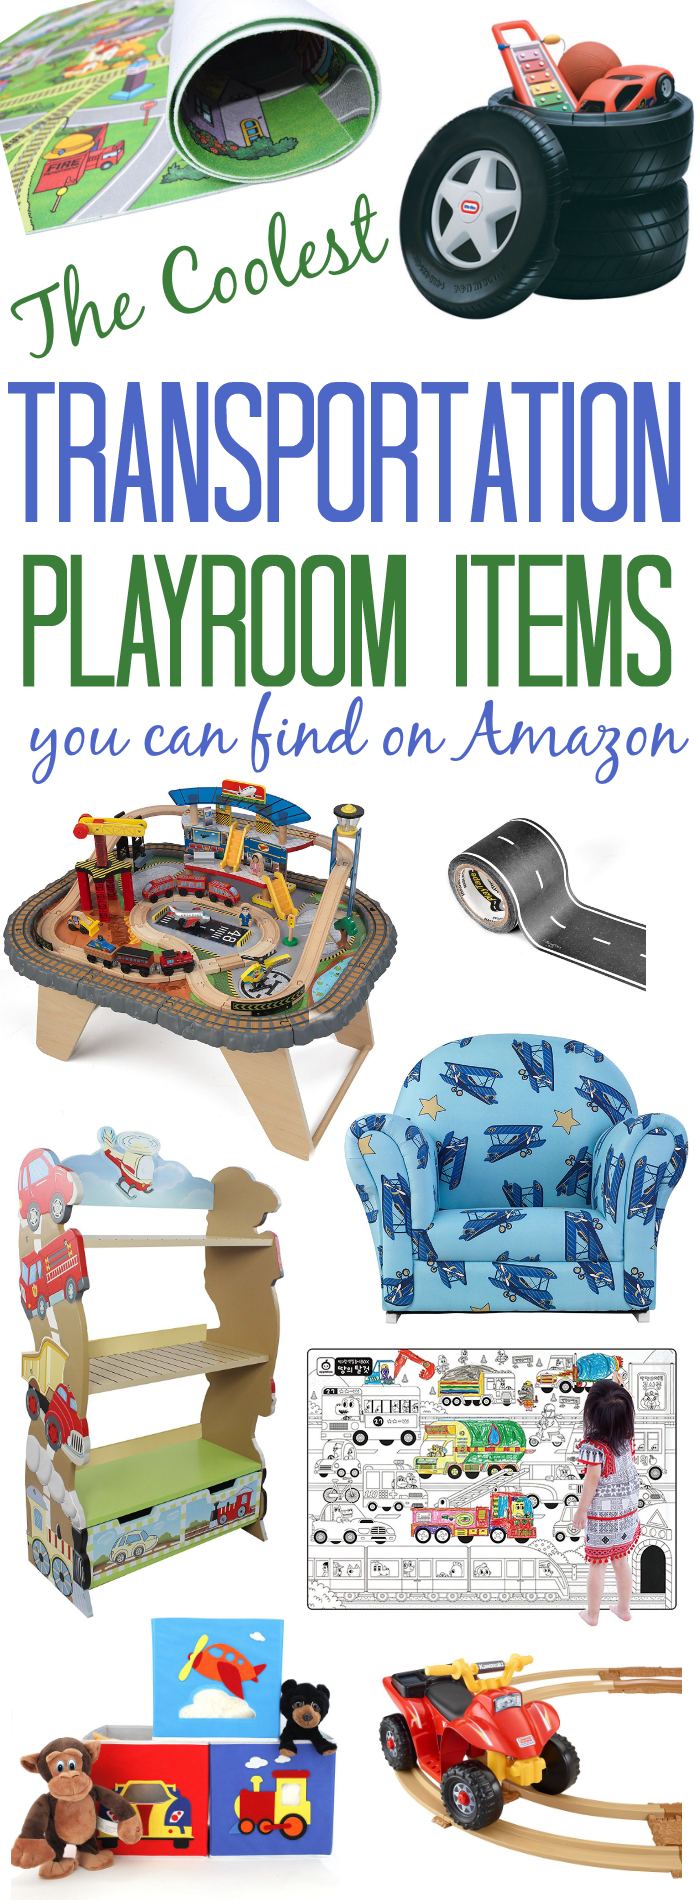 We found the coolest items for a Transportation Play room! And they're all available on Amazon!